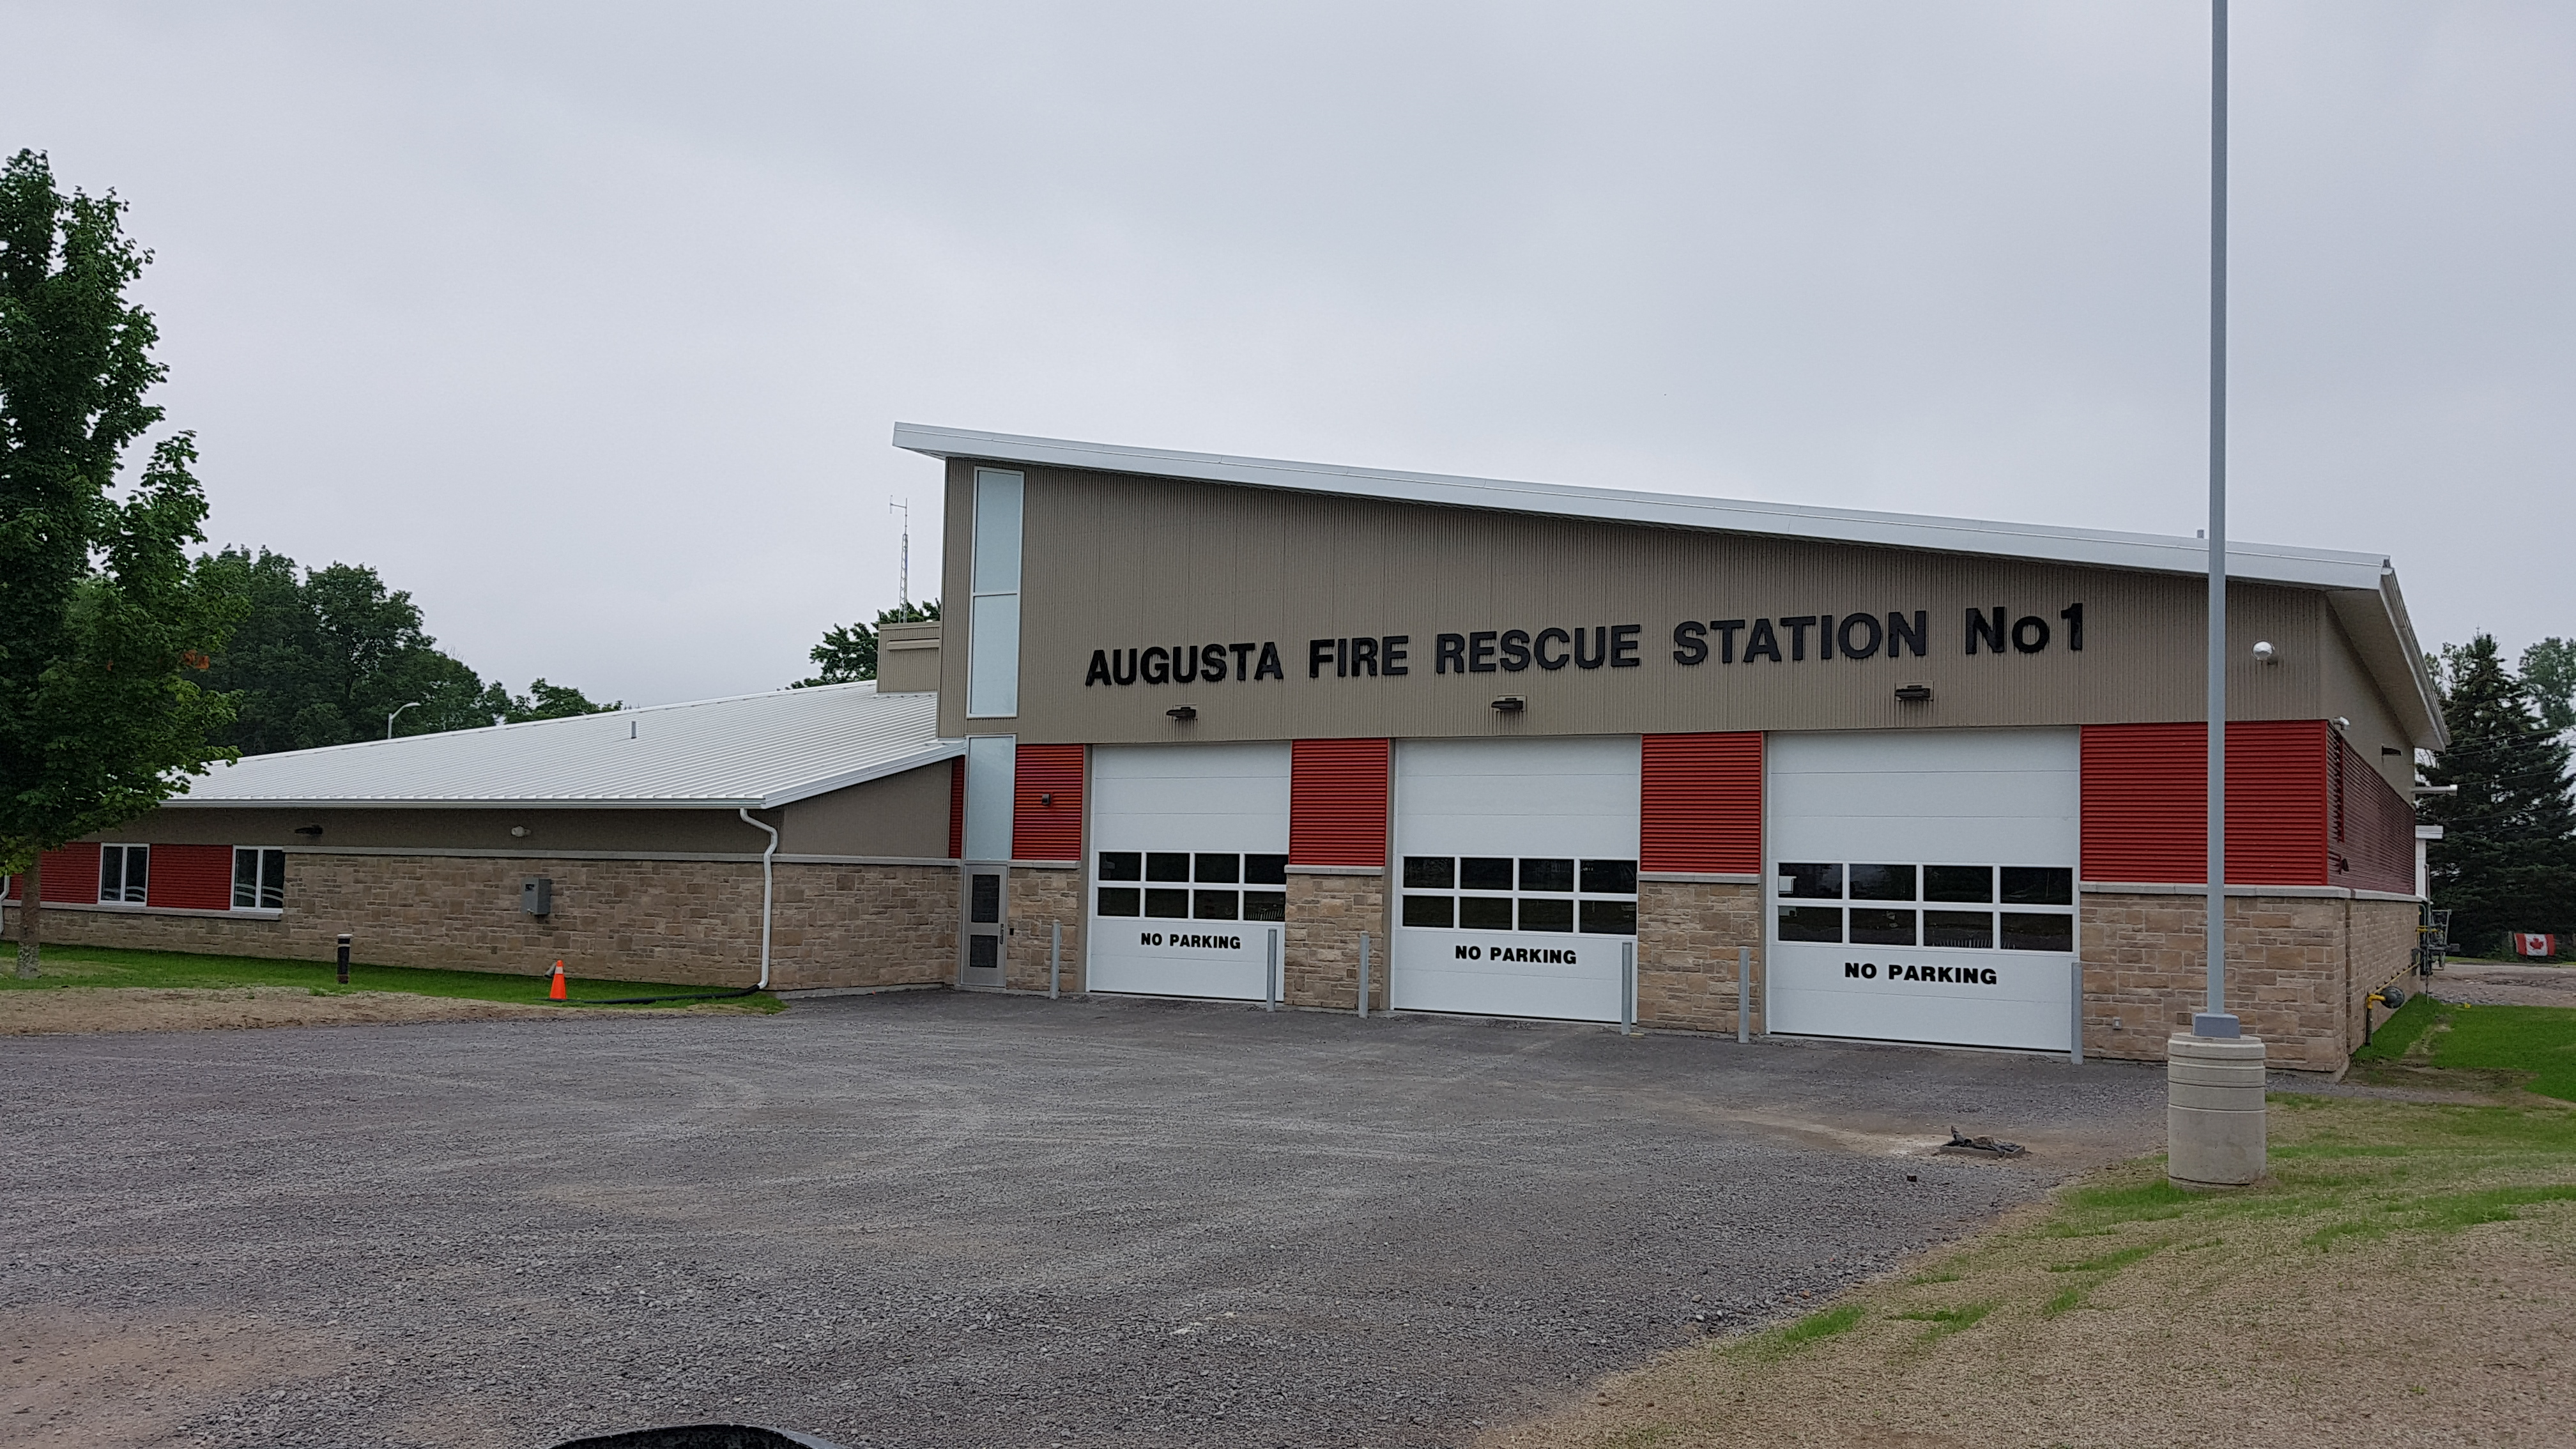 outside view of augusta fire rescue station 1 bay doors